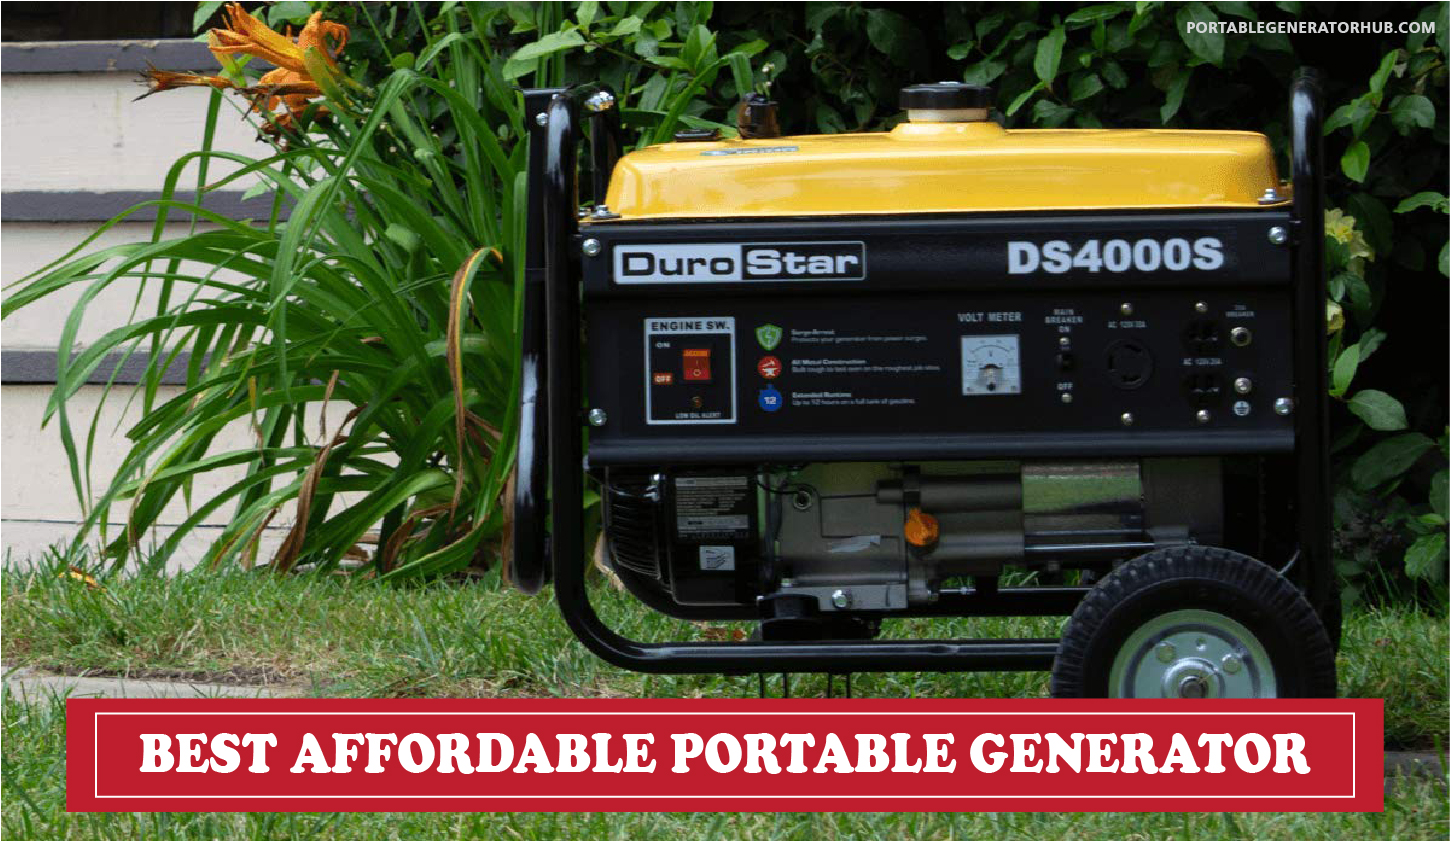 BEST AFFORDABLE PORTABLE GENERATOR